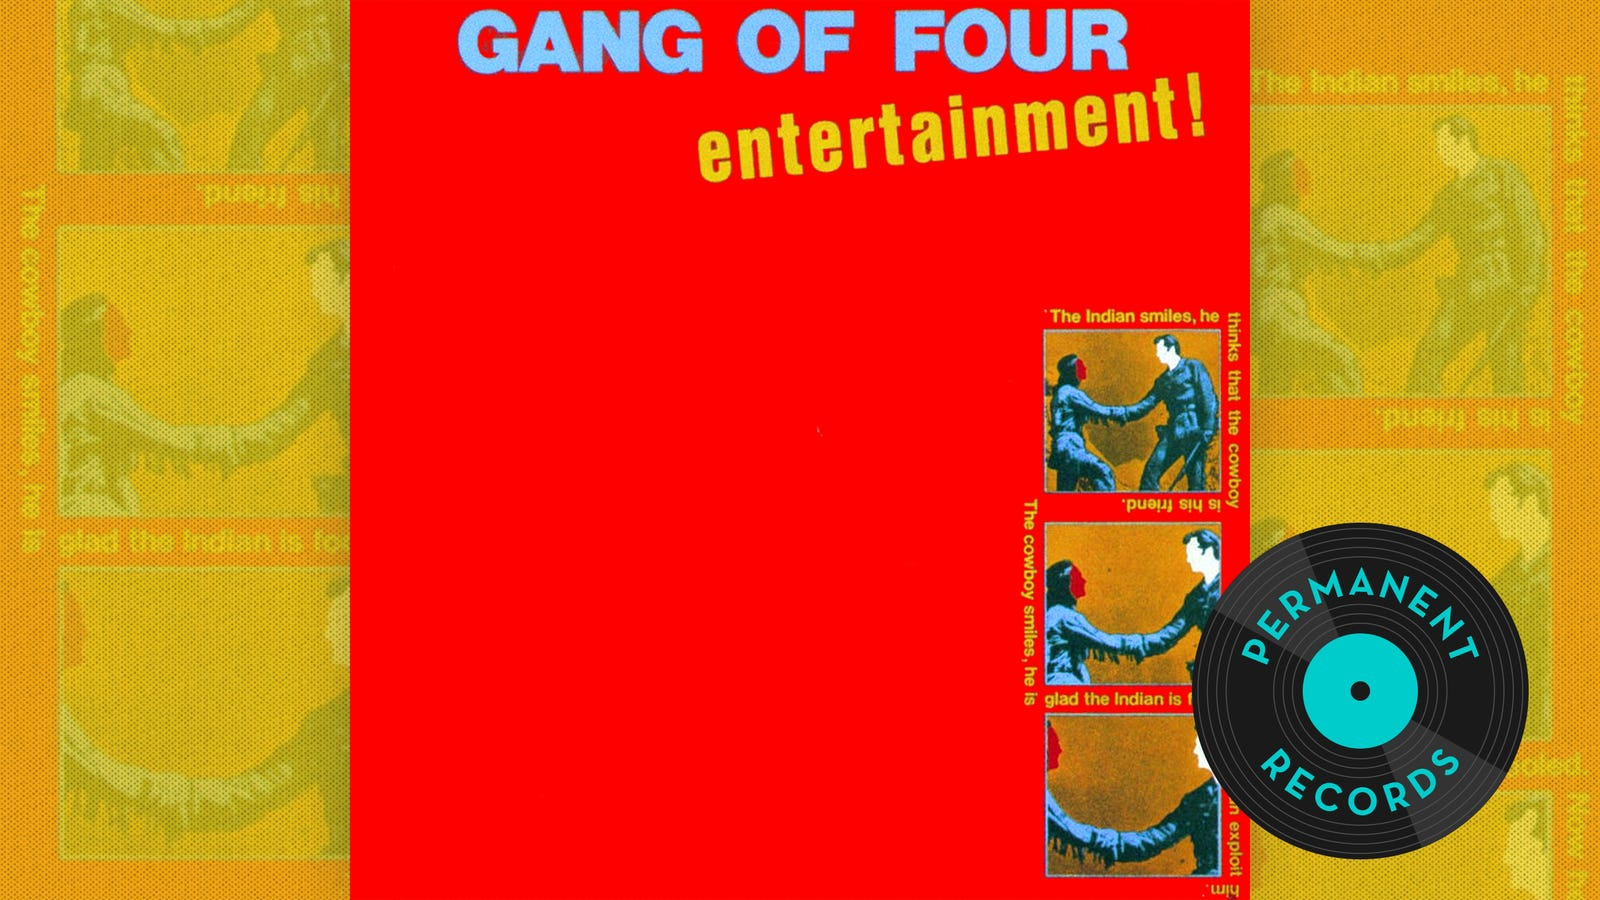 """Art meets the devil via James Brown"": The everlasting impact of Gang Of Four's Entertainment!"